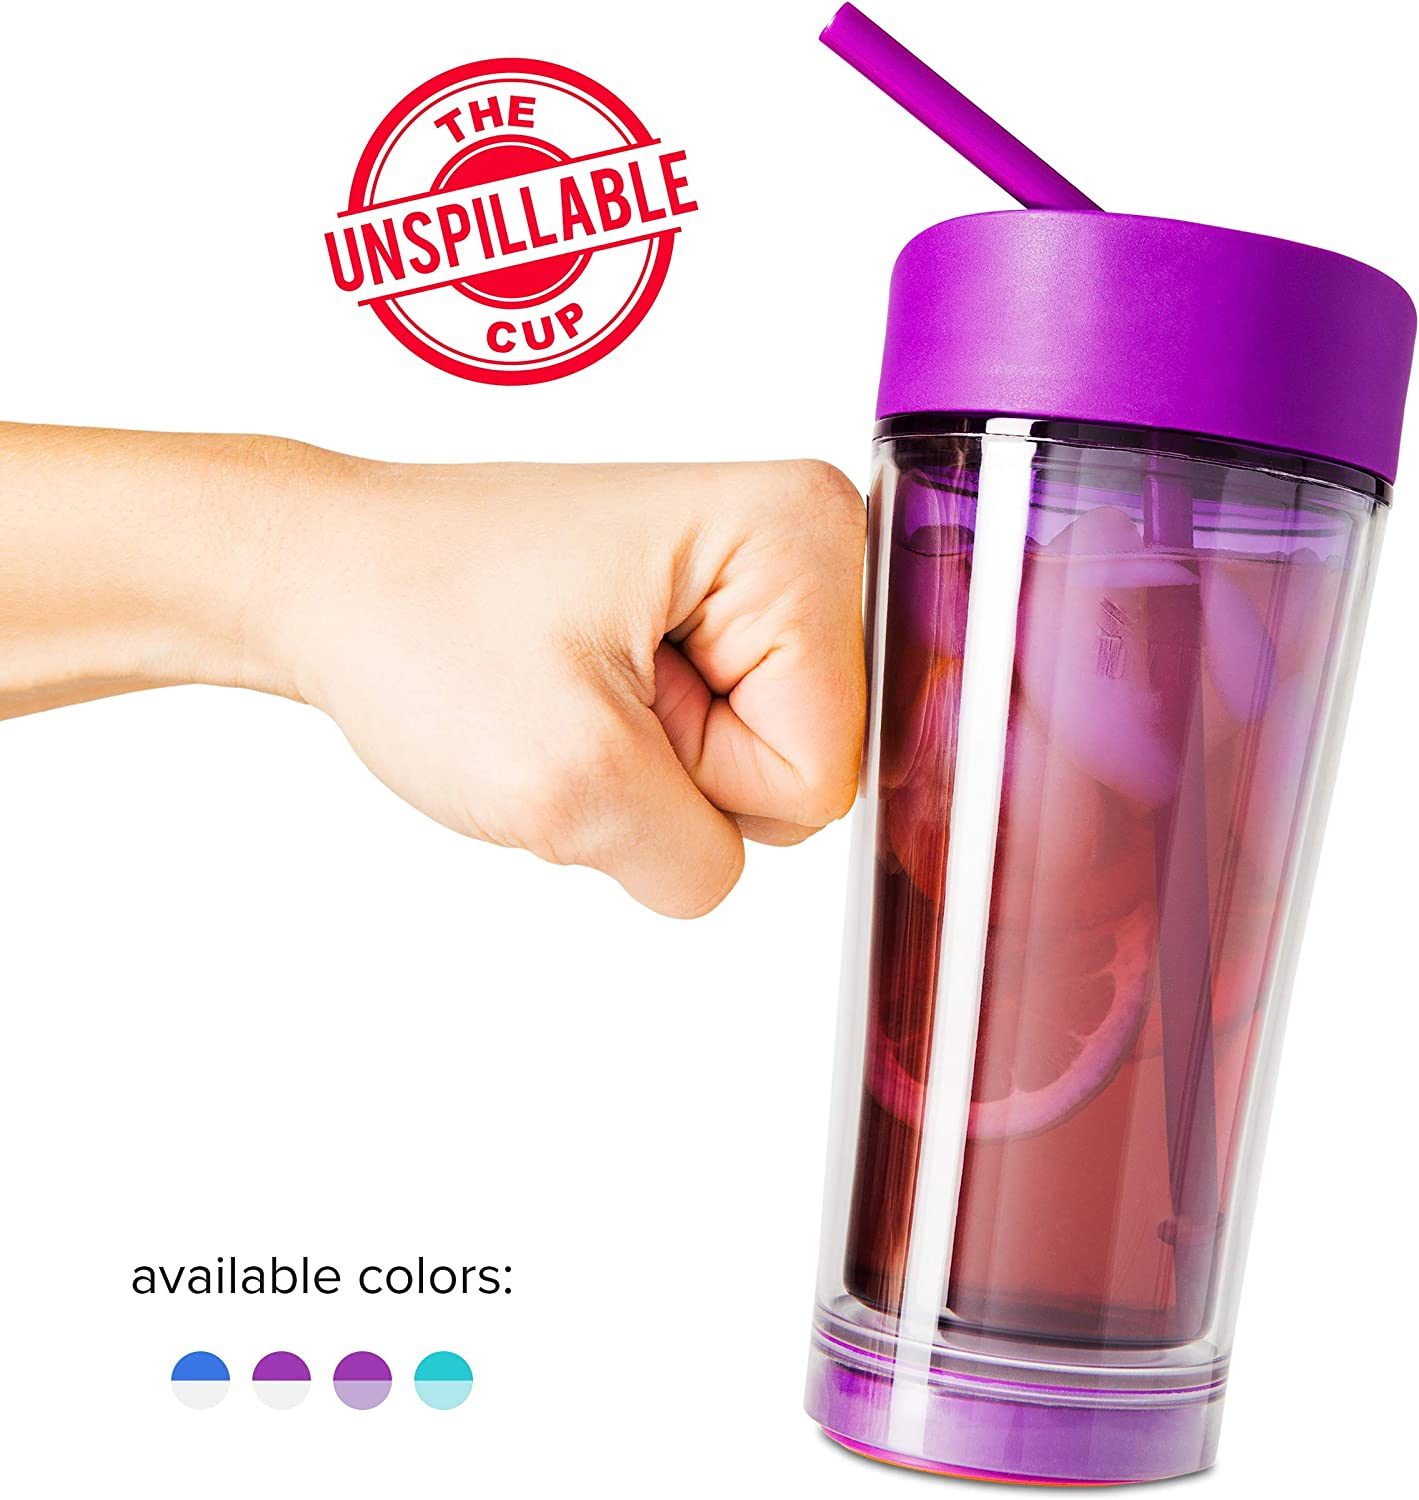 Mighty Mug Vortex Tumbler, The Travel Mug That WonÕt Fall, with Double Wall Insulation and Convenient Flex Straw, Purple, 20 oz